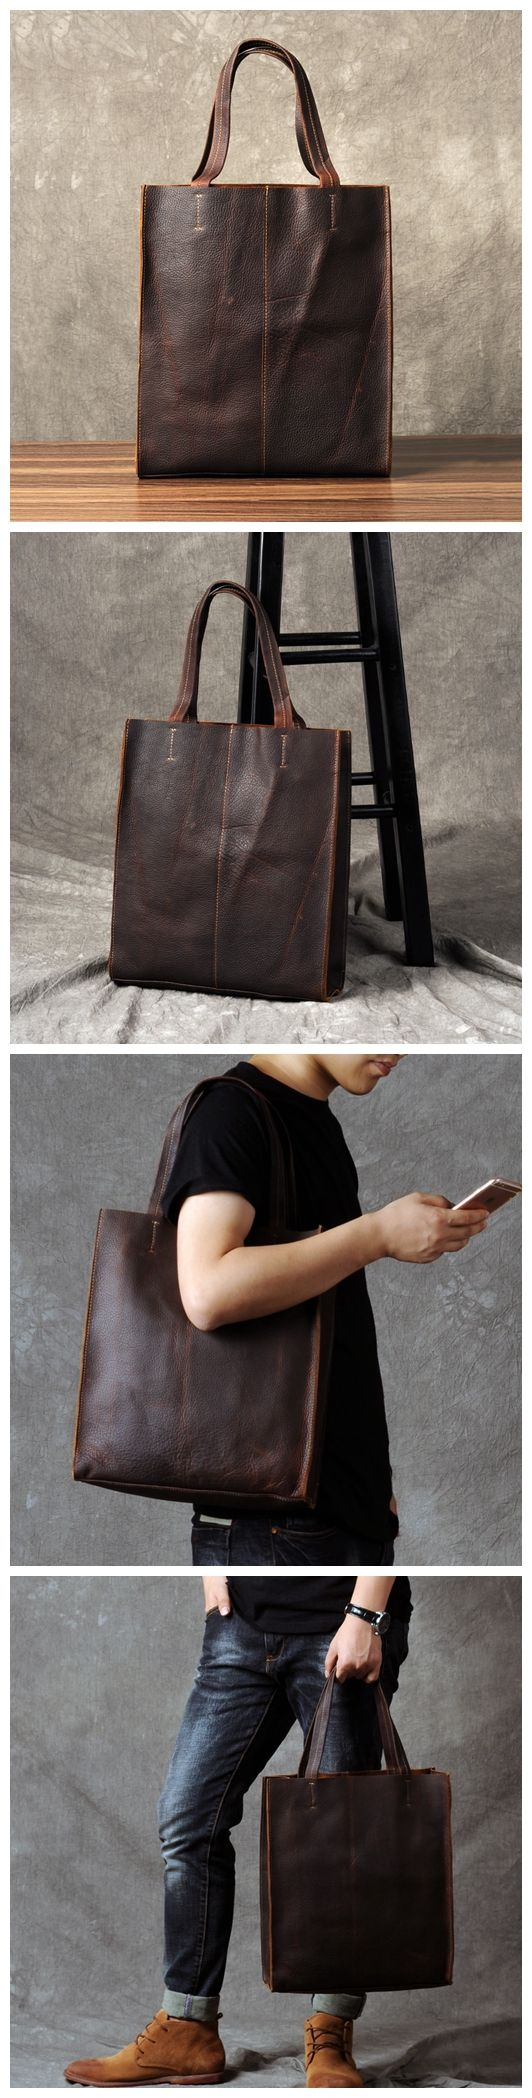 LEATHER DIAPER BAG, LARGE LEATHER TOP HANDLE BAG,LEATHER TOTE,MODERN DIAPER BAG, WOMENS BAG